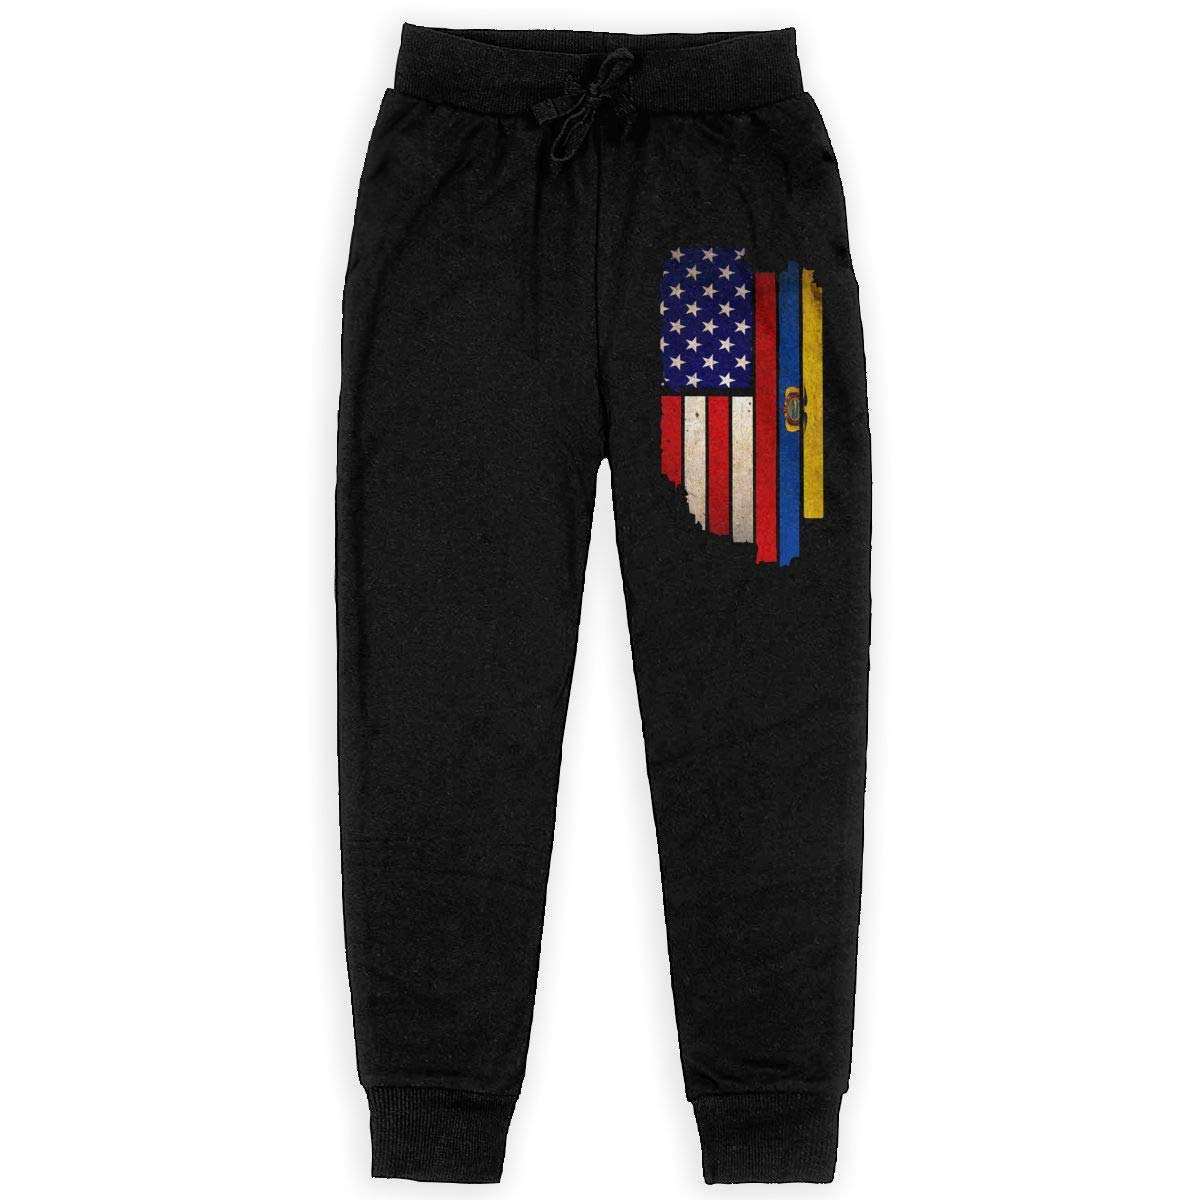 Youth Warm Fleece Active Pants for Teen Girls Vintage USA Ecuador Flag Soft//Cozy Sweatpants